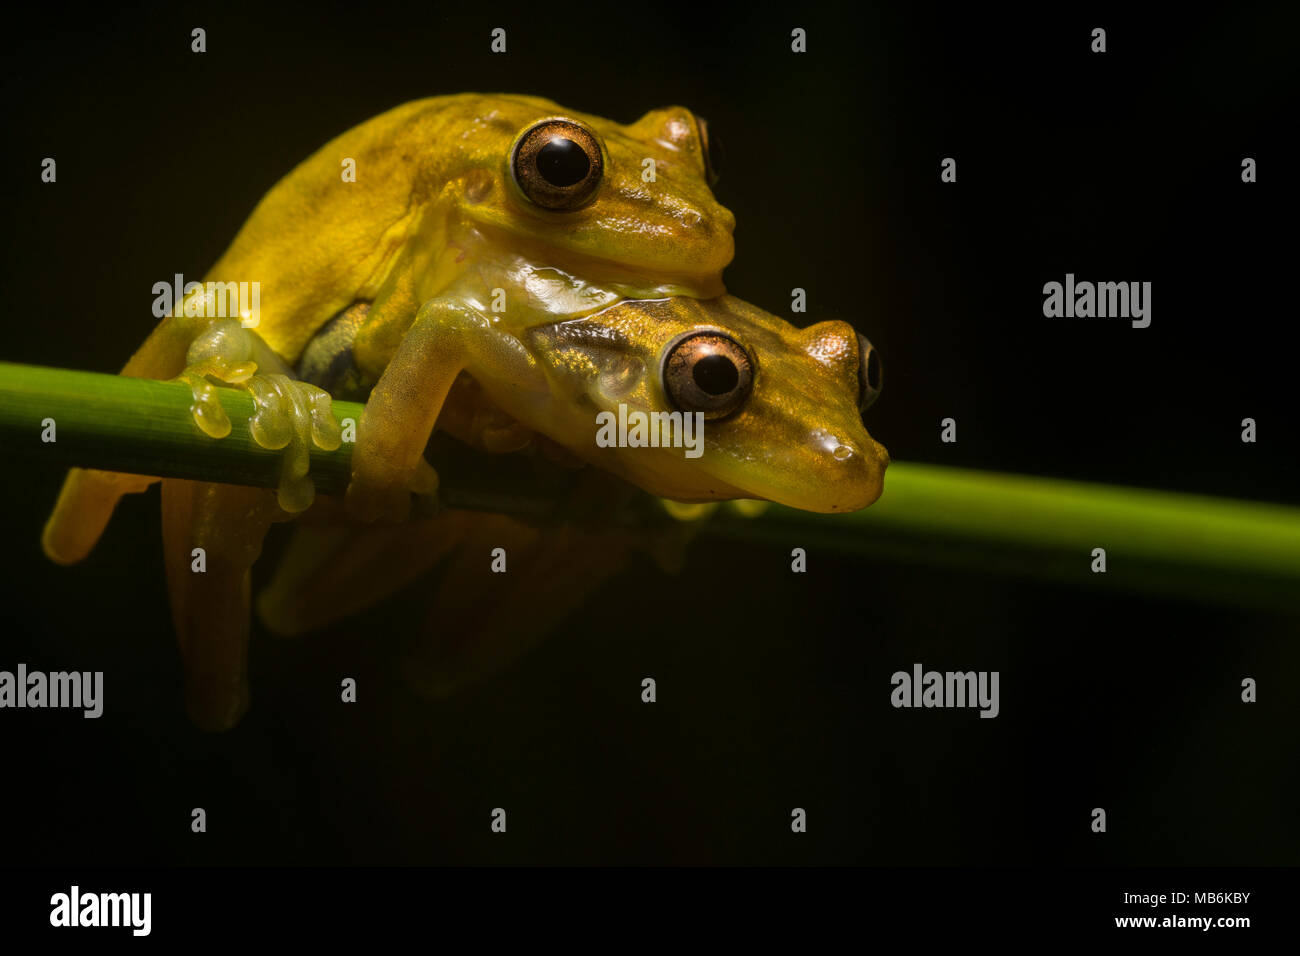 A pair of yellow snouted treefrogs (Scinax sp.) in amplexus in tropical Ecuador.  By morning these two will have deposited their eggs in the water. - Stock Image